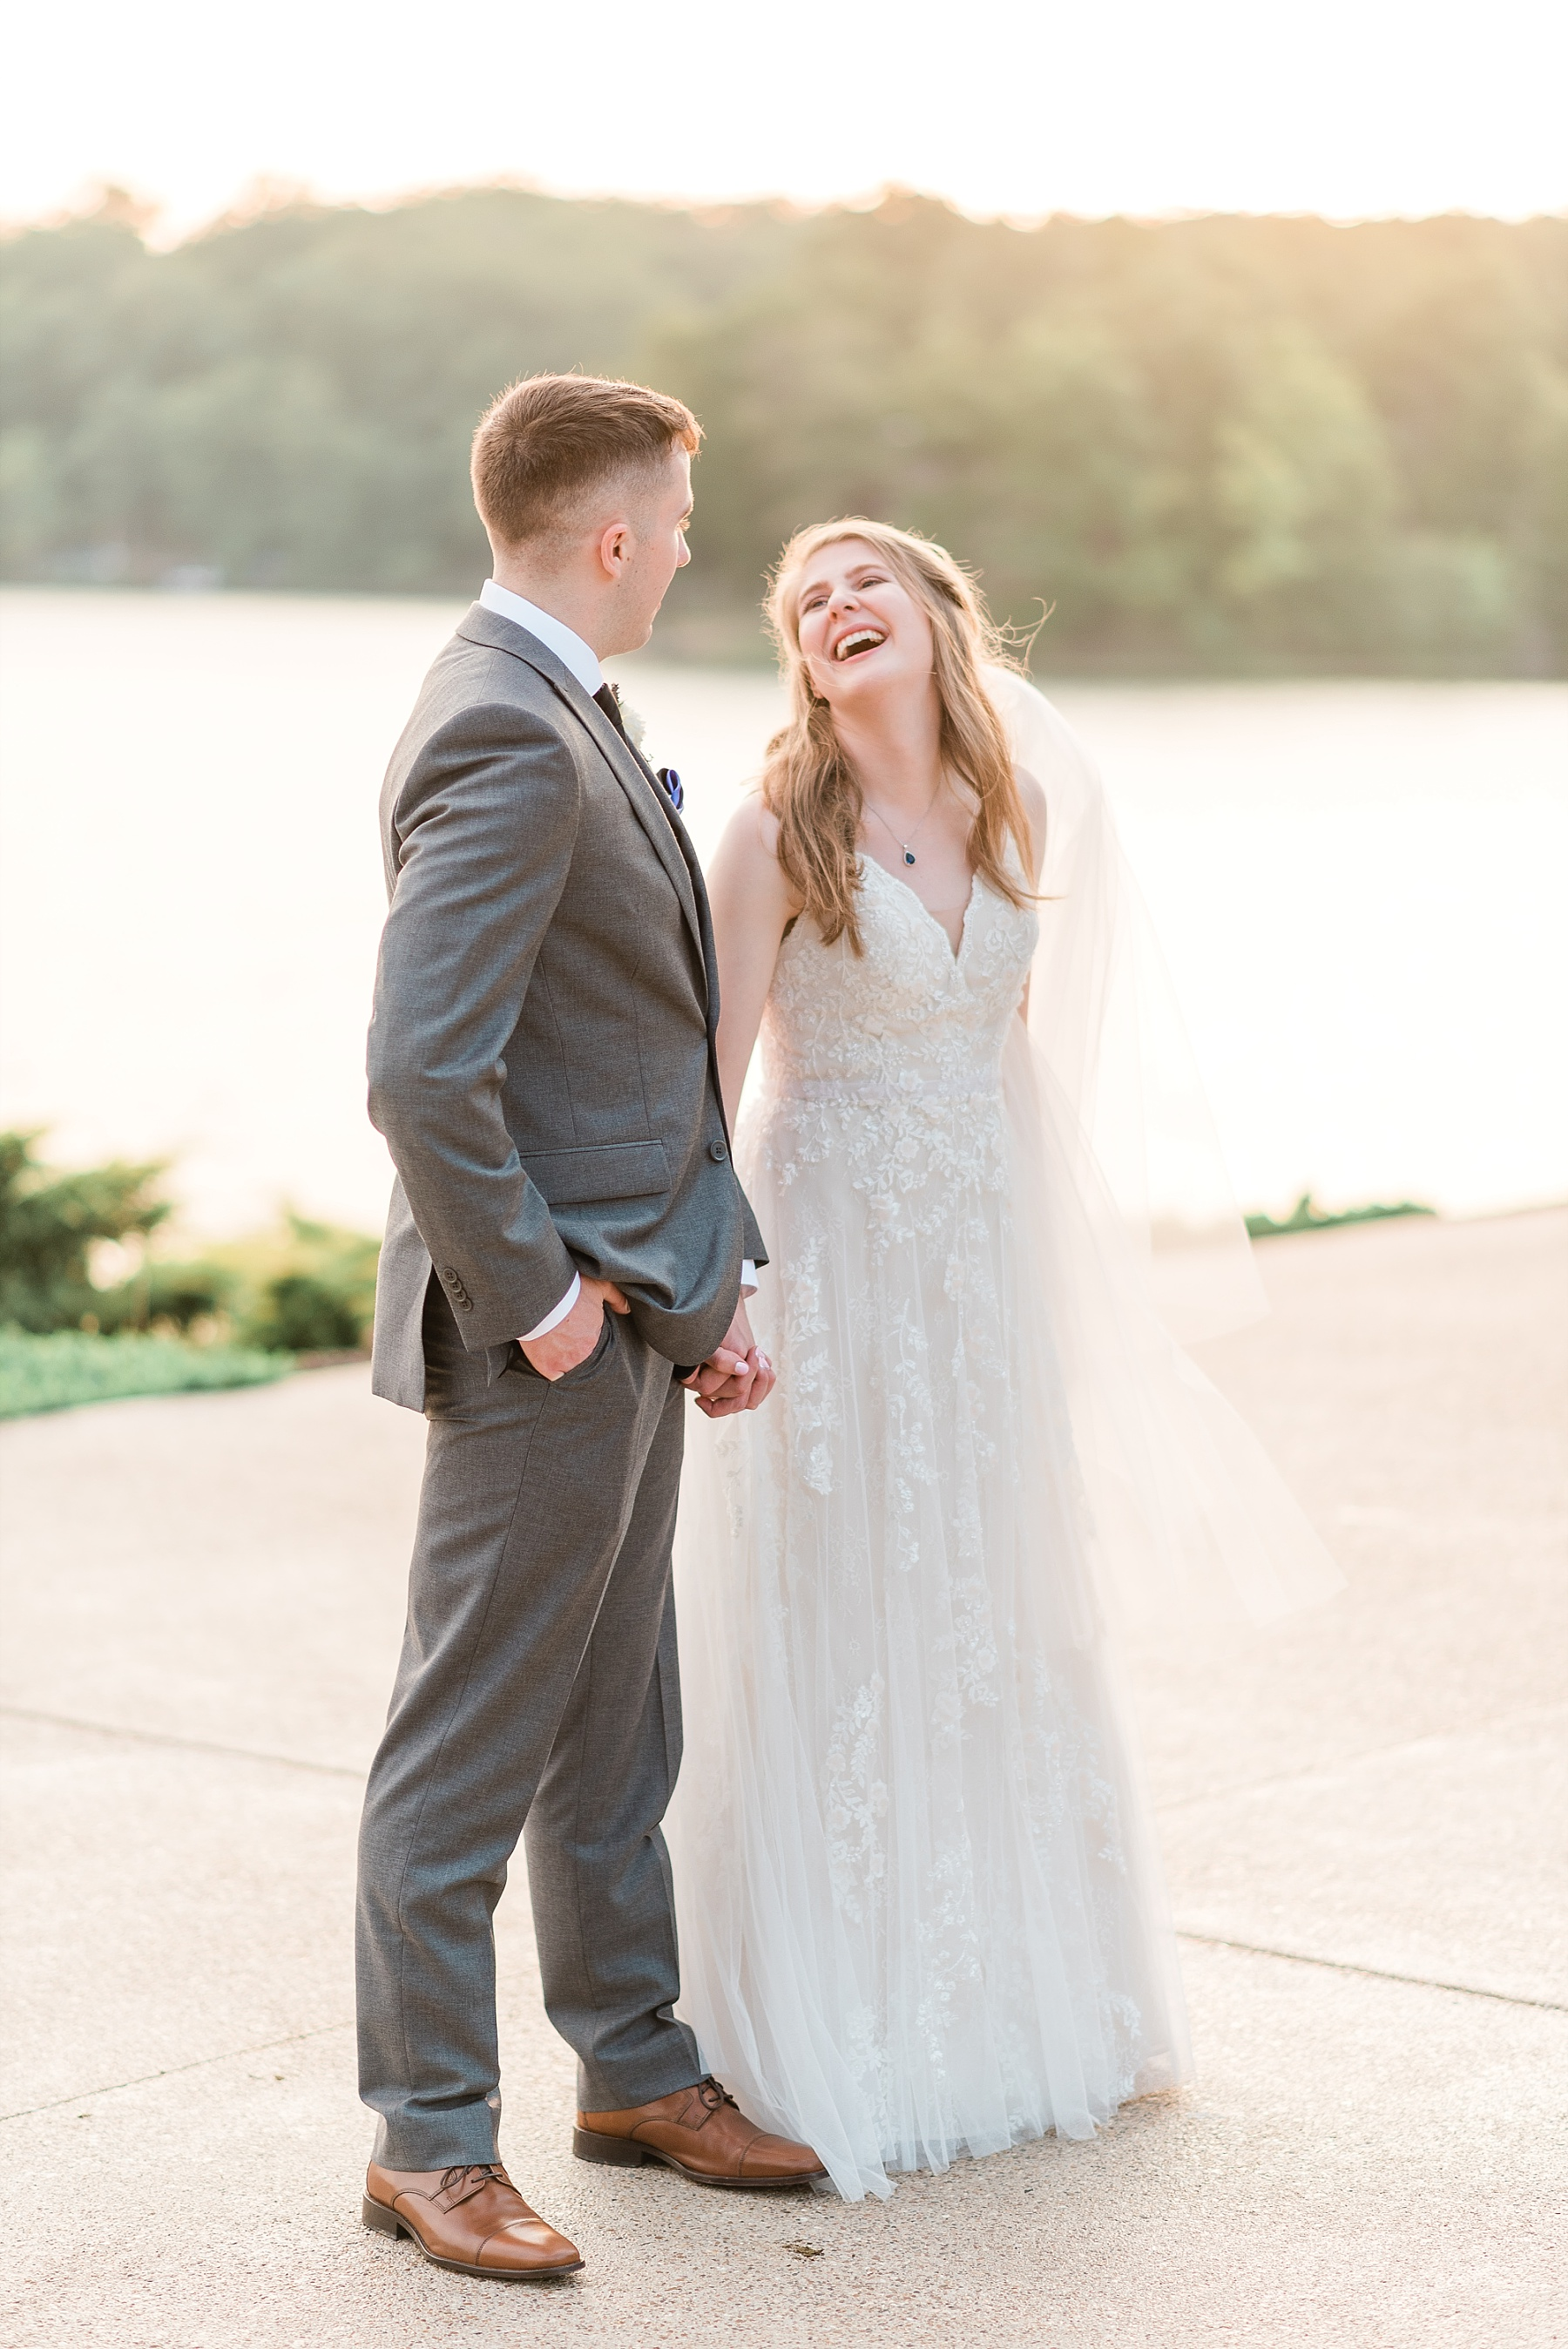 Lavender Hues at Summer Wedding at Innsbrook Resort by Kelsi Kliethermes Photography St. Louis Wedding Photographer_0044.jpg